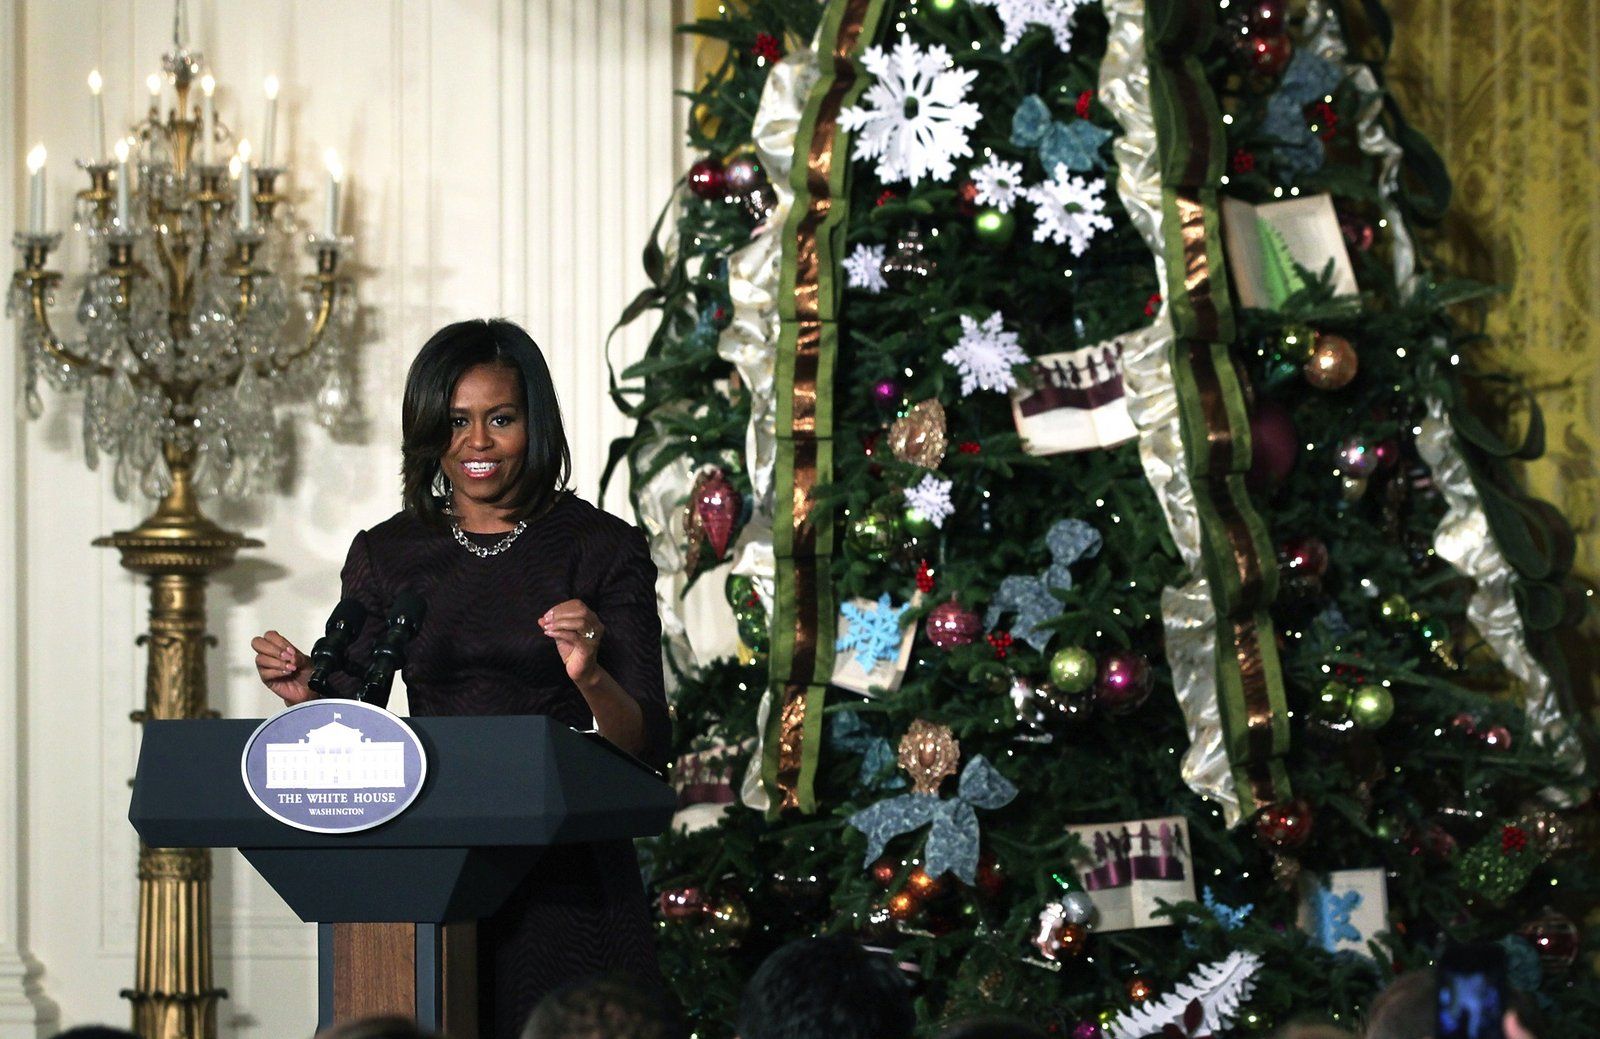 https://i2.wp.com/media.vogue.com/r/w_1600//wp-content/uploads/2014/12/03/holding-white-house-holiday-decorations-michelle-obama1.jpg